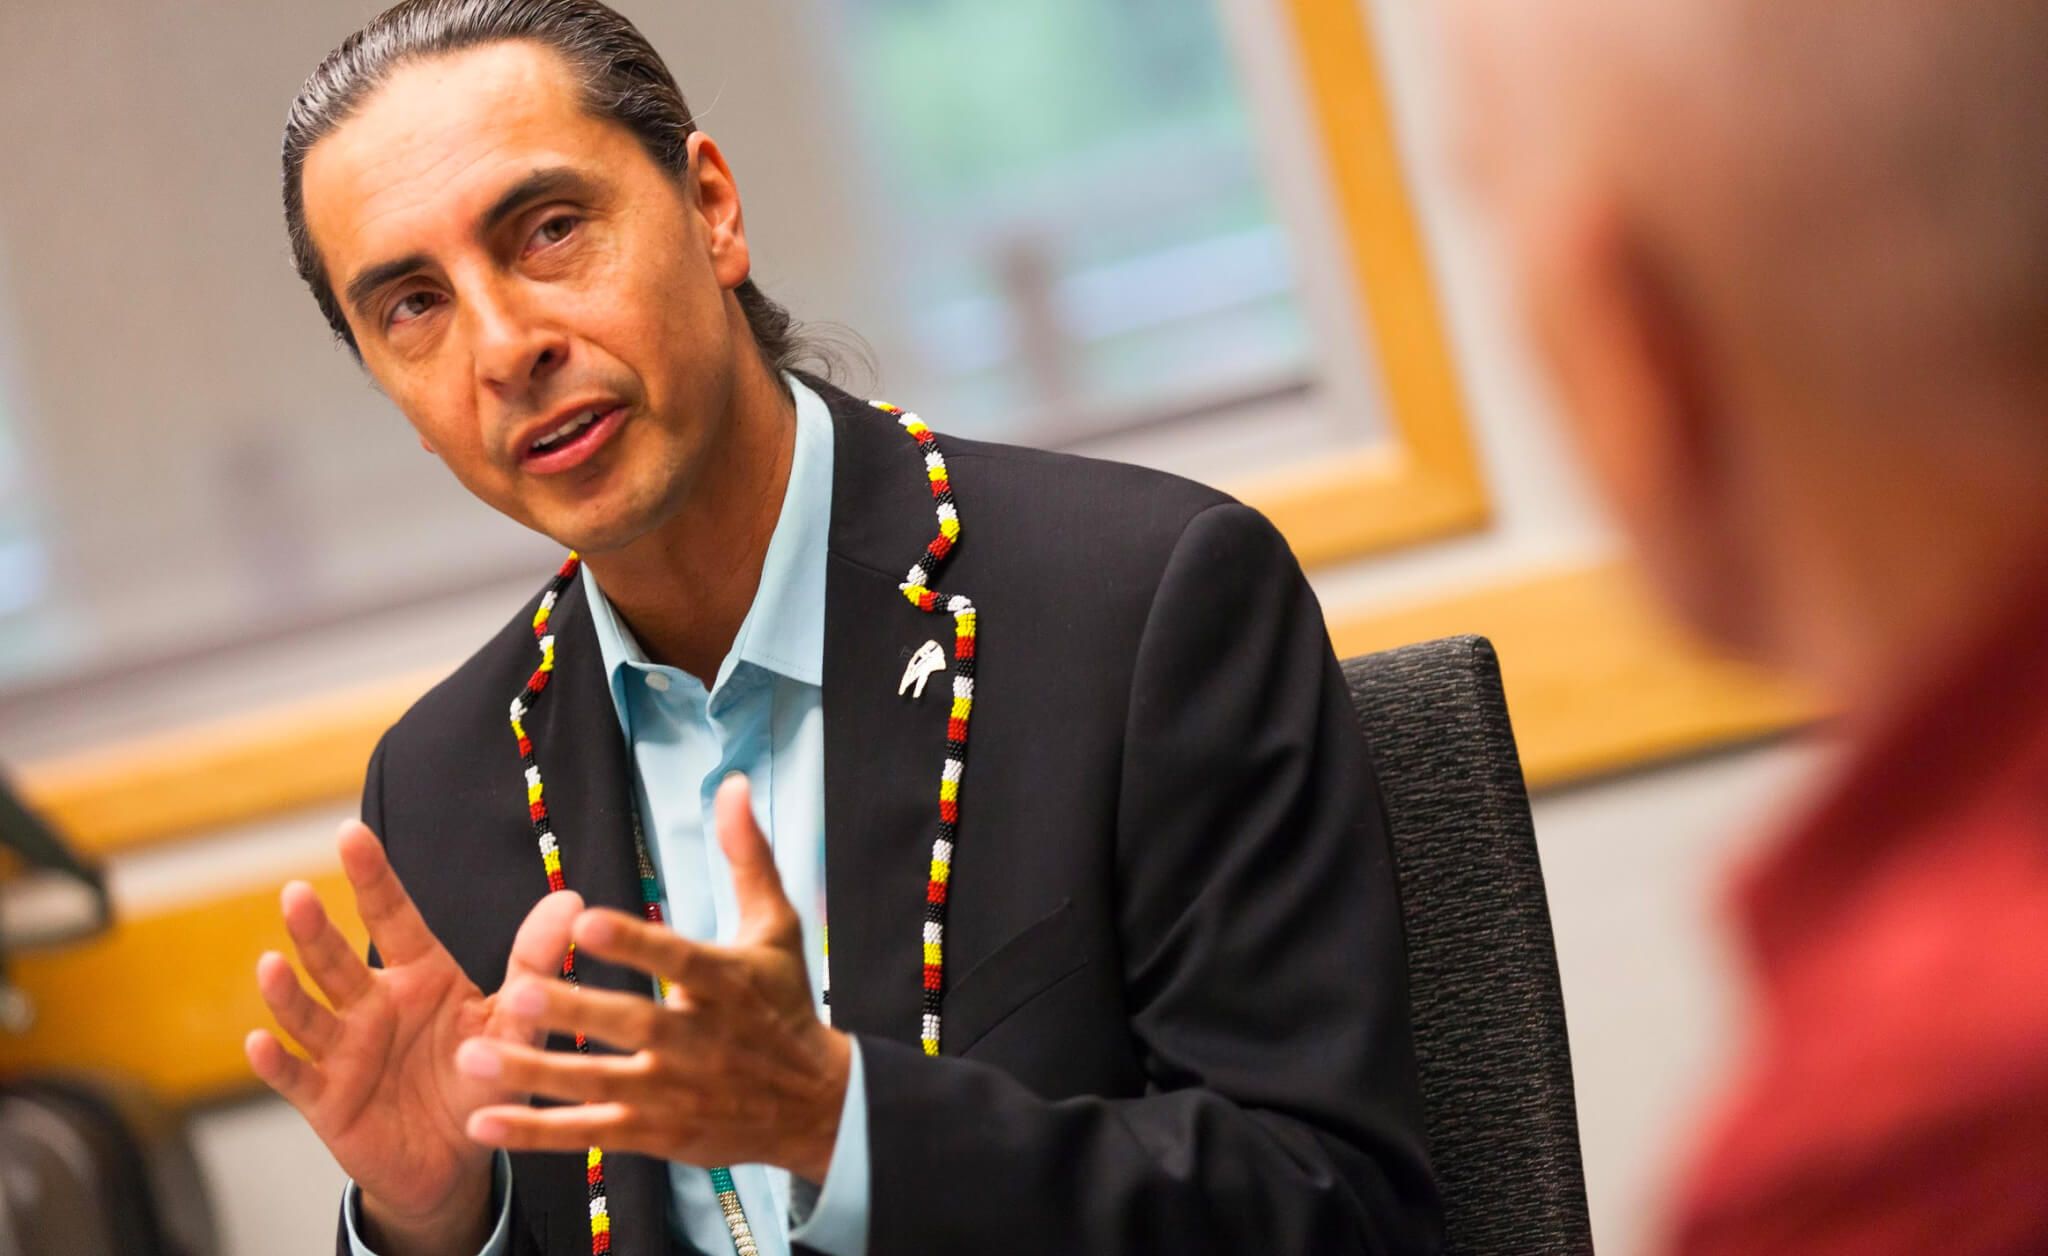 Grand Chief Arlen Dumas at a CABC Health Policy Roundtable in Winnipeg